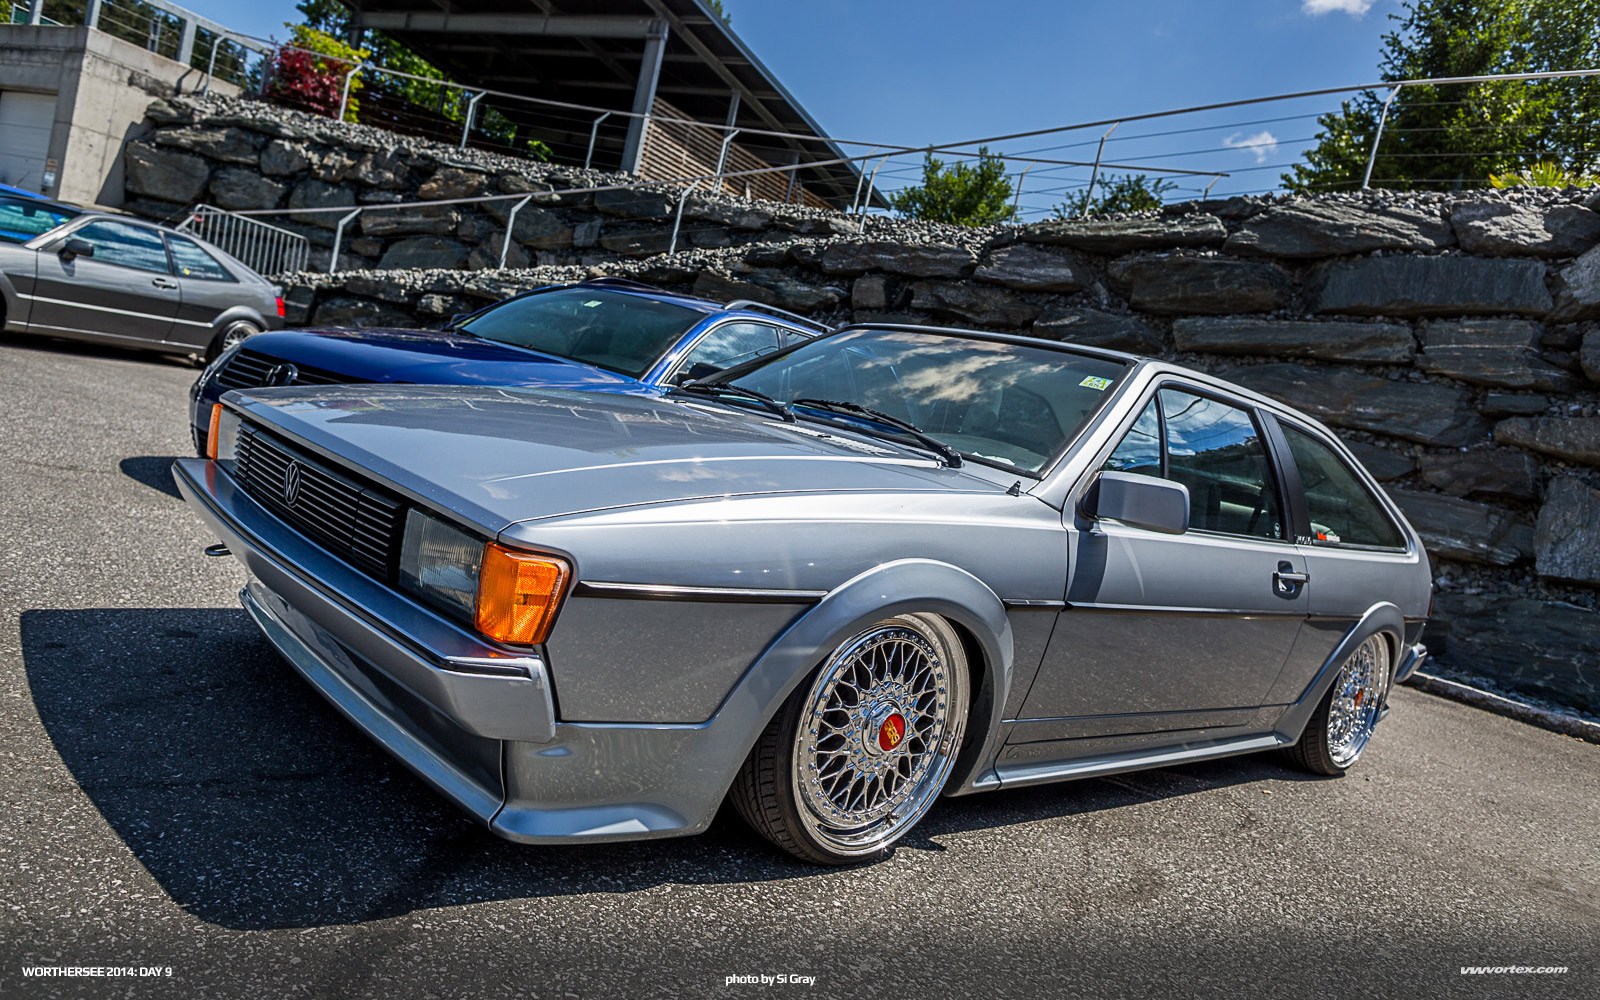 2014-Worthersee-Day-9-Si-Gray-389